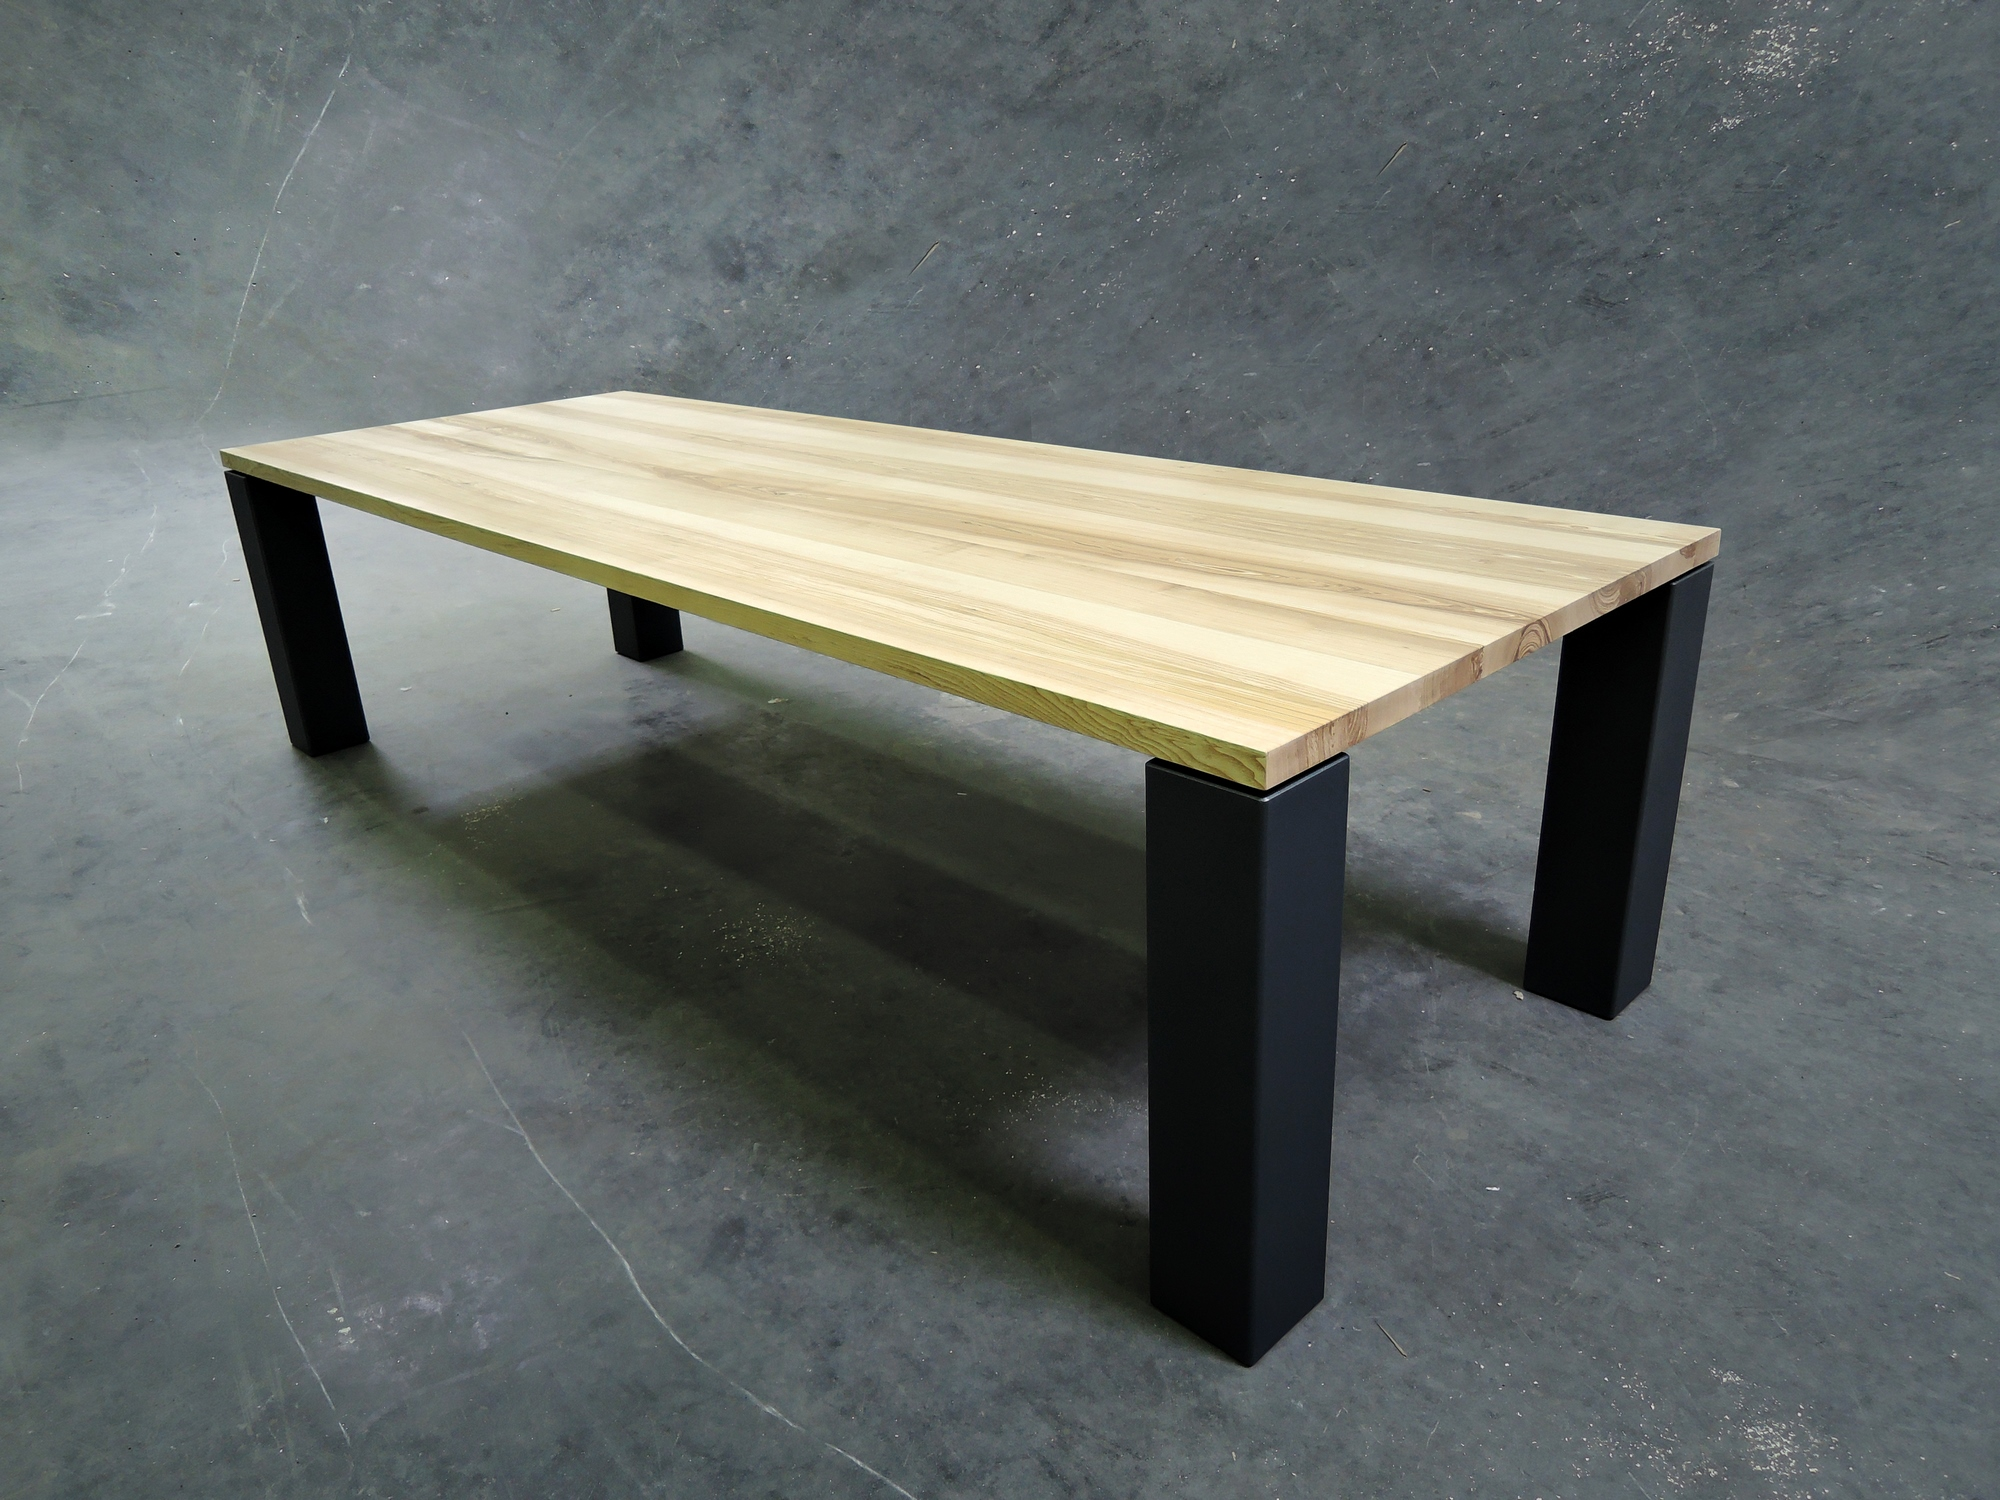 table panorama m tal et bois massif fabrication artisanale. Black Bedroom Furniture Sets. Home Design Ideas